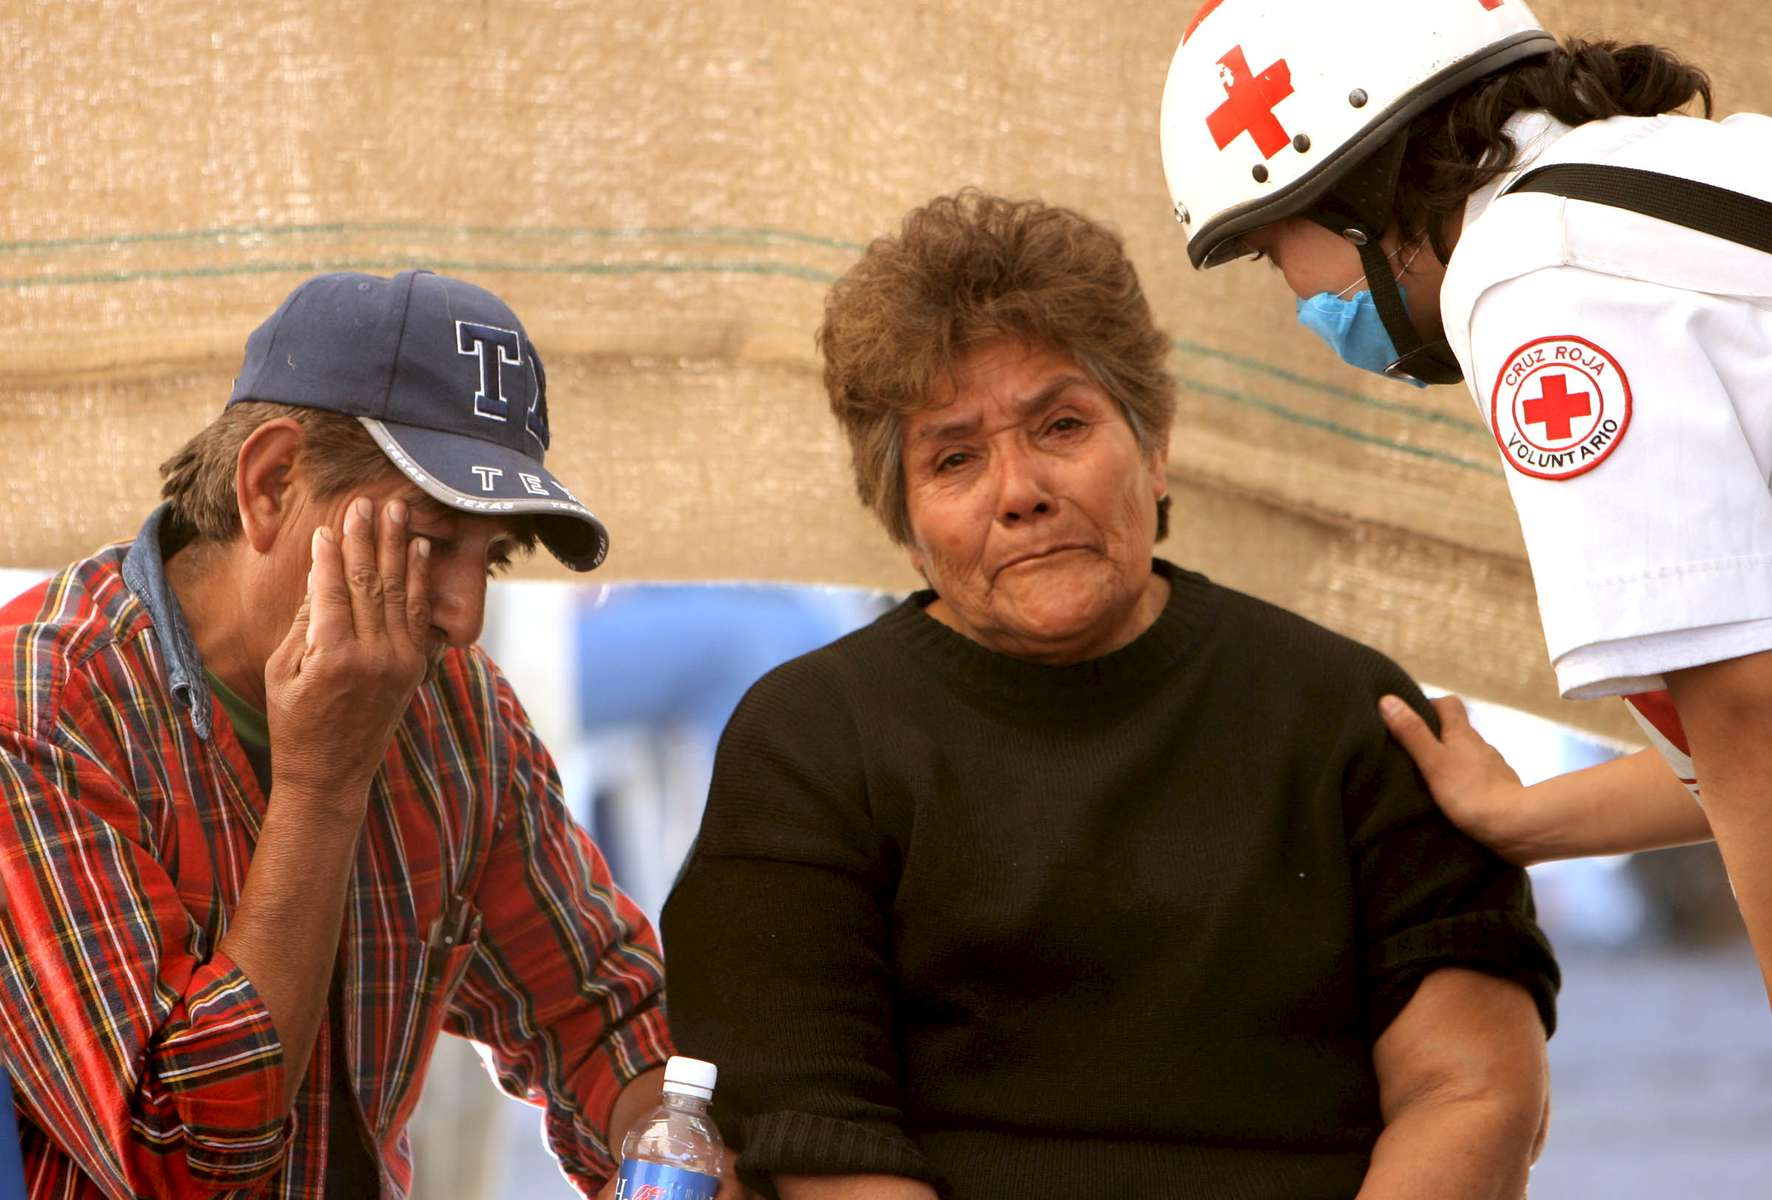 A red cross worker comforts Petra Arteaga Garcia, center, and her brother Miguel Arteaga Garcia after they received news Saturday that the explosion at the Pasta de Conchos coal mine in San Juan de Sabinas in the Mexican state of Coahuila created temperatures too high for survivors. Their brother, Juan Raul Arteaga, 46, was trapped in the mine.  In the Early morning on Sunday 65 miners were trapped as much as 2000 feet below ground after an explosion.Sharon Steinmann / Houston Chronicle